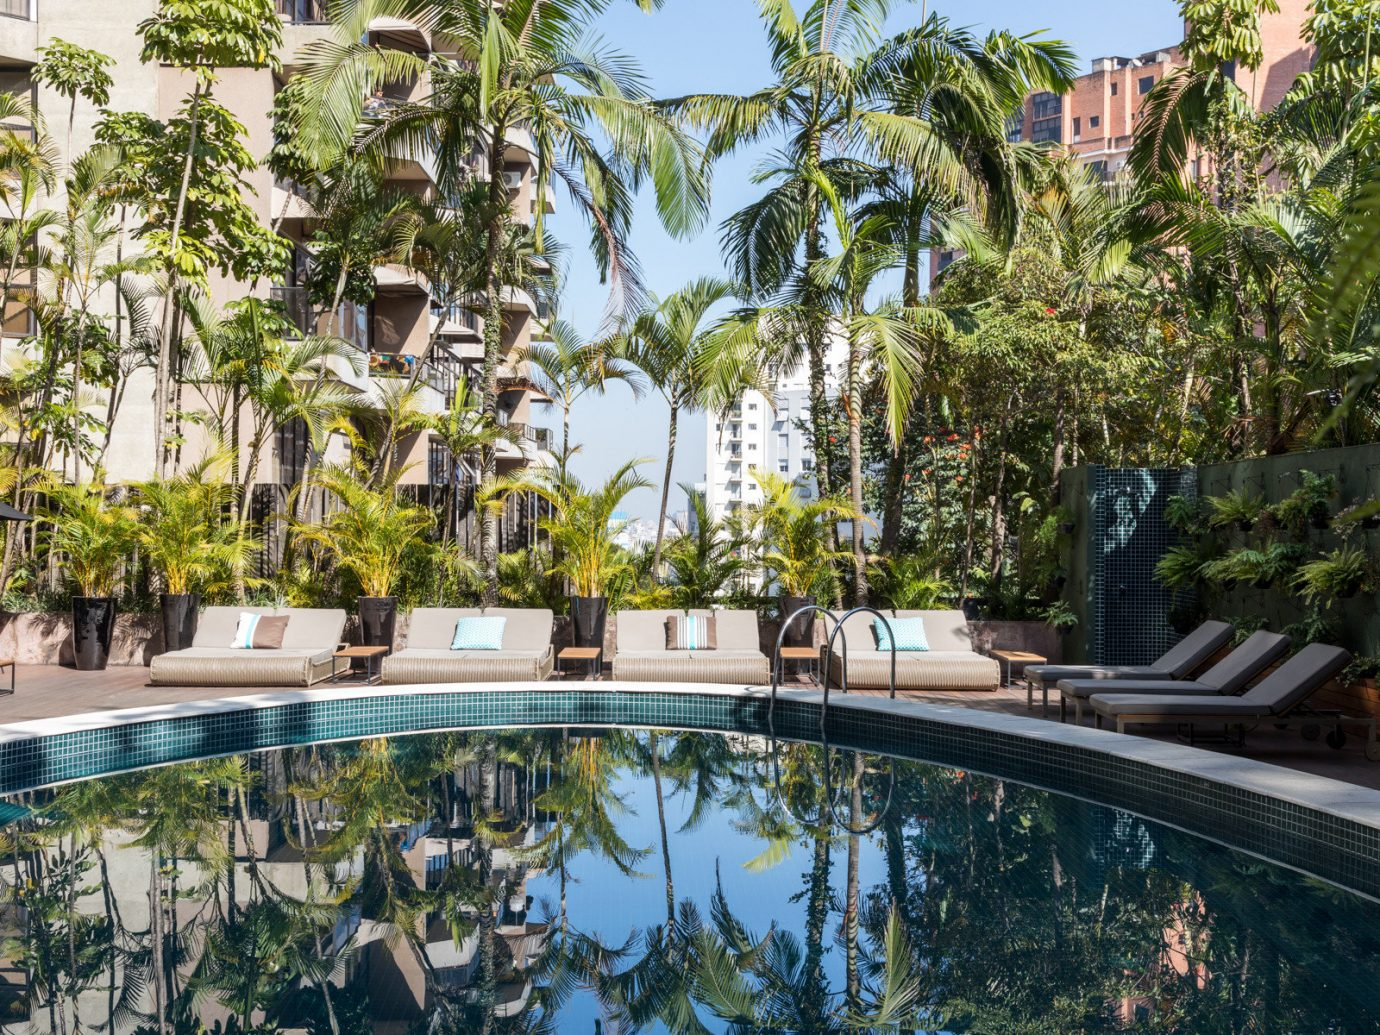 Hotels tree outdoor Resort swimming pool property arecales palm tree real estate estate condominium leisure home water Villa hotel reflecting pool mixed use plant vacation landscaping amenity